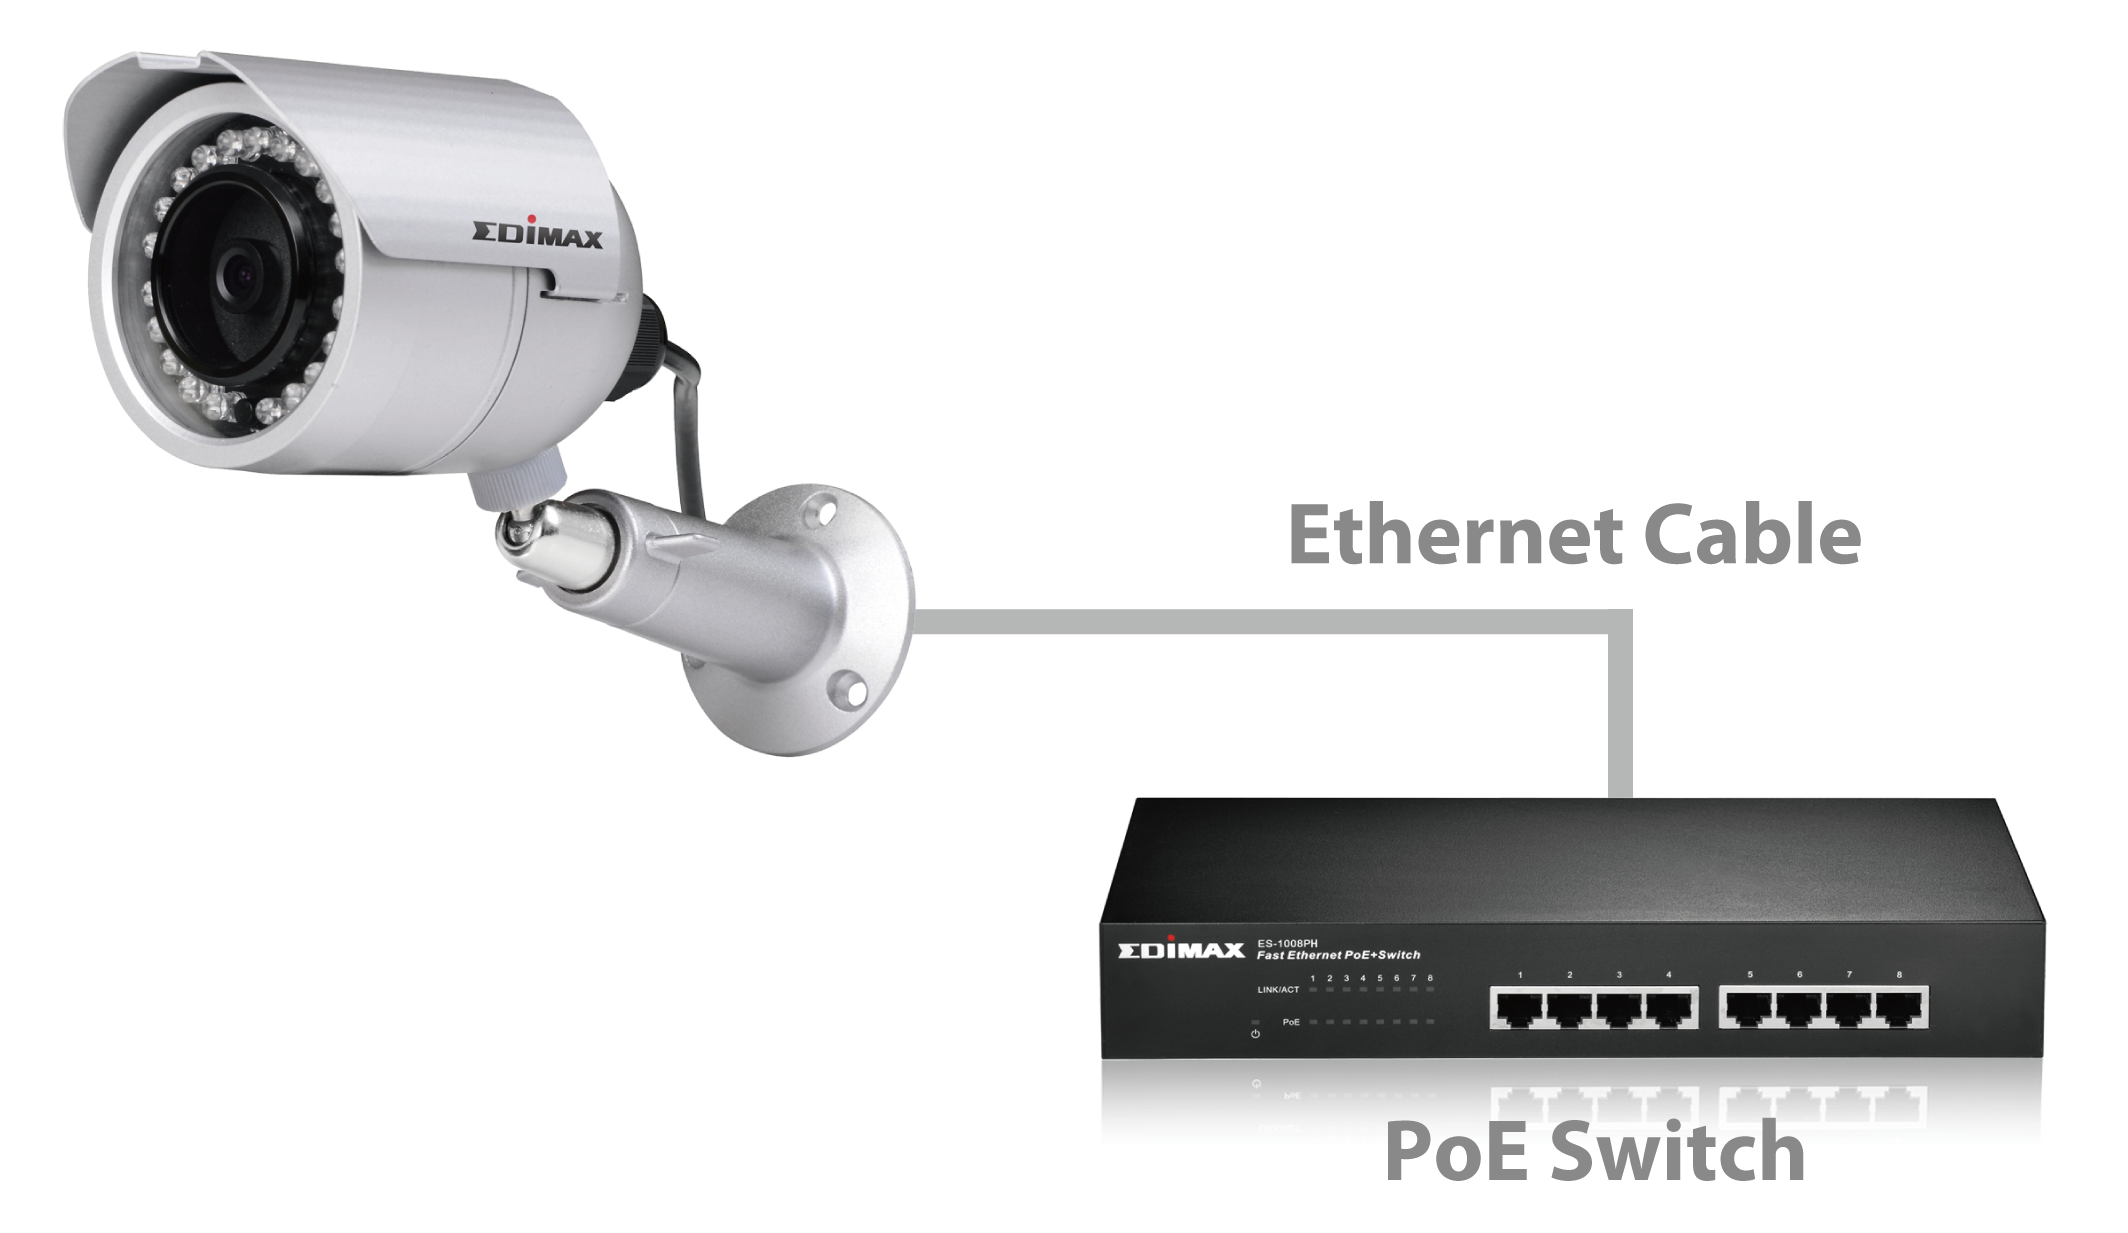 Edimax IR-112E 2Mpx Outdoor PoE True Day & Night Bullet Network Camera Bullet Network Camera IR-112E_PoE_network_camera.png